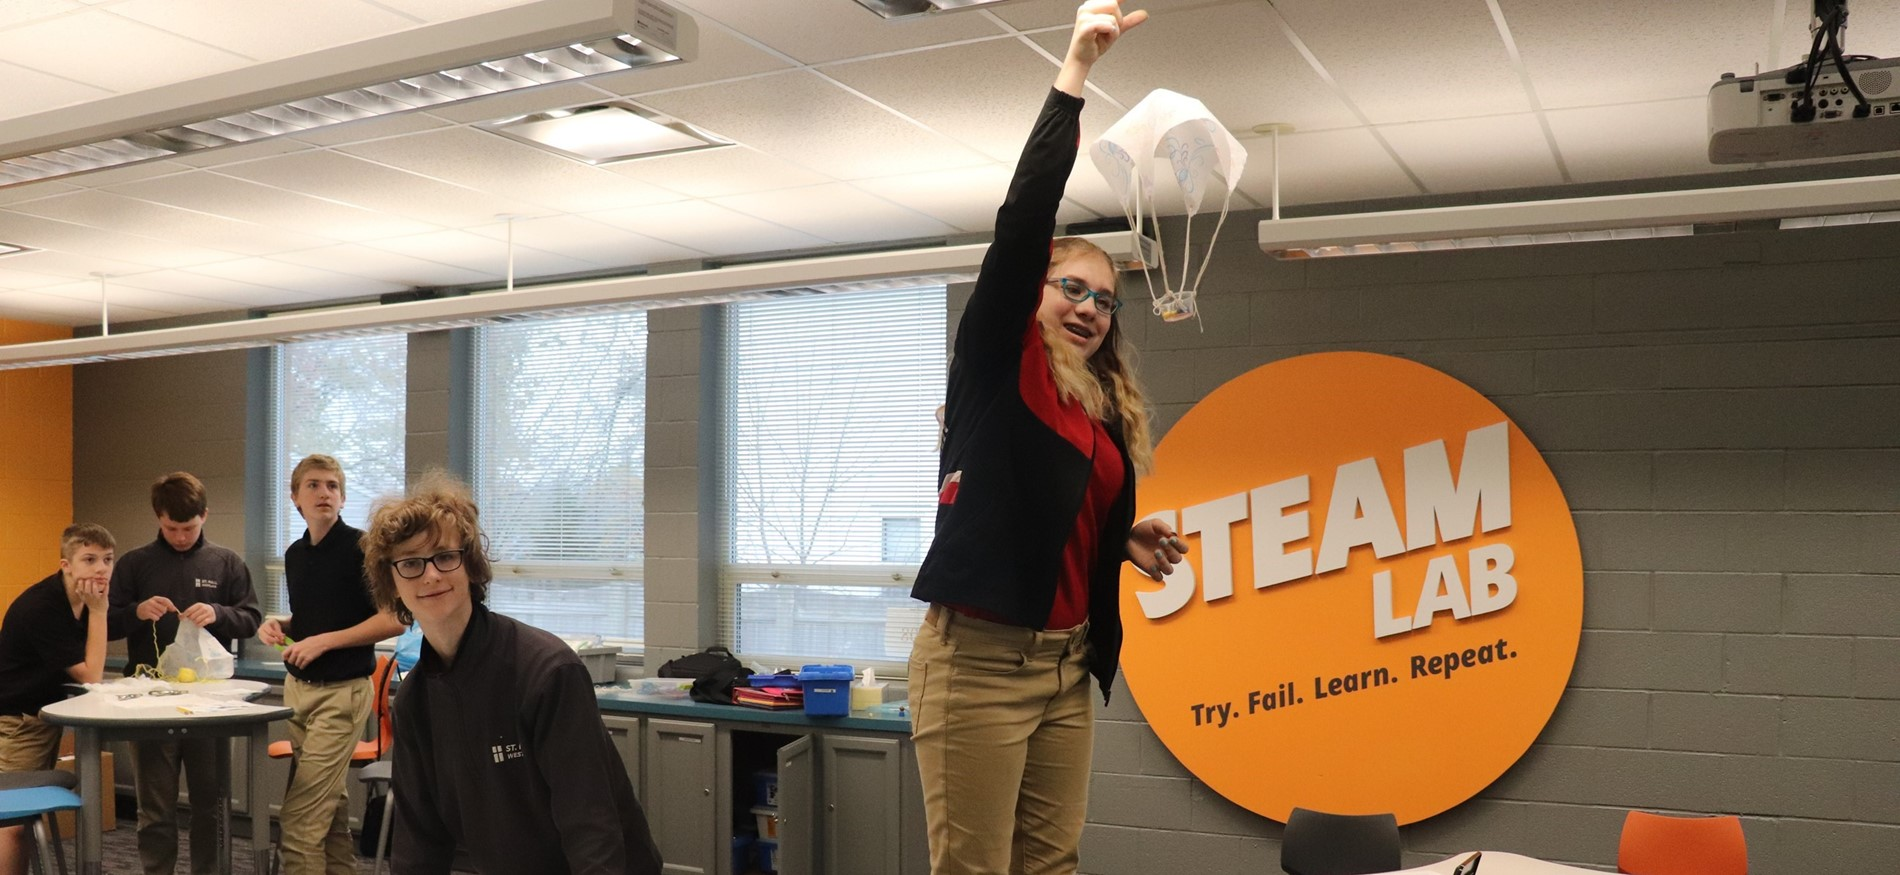 Student parachute in STEAM Lab